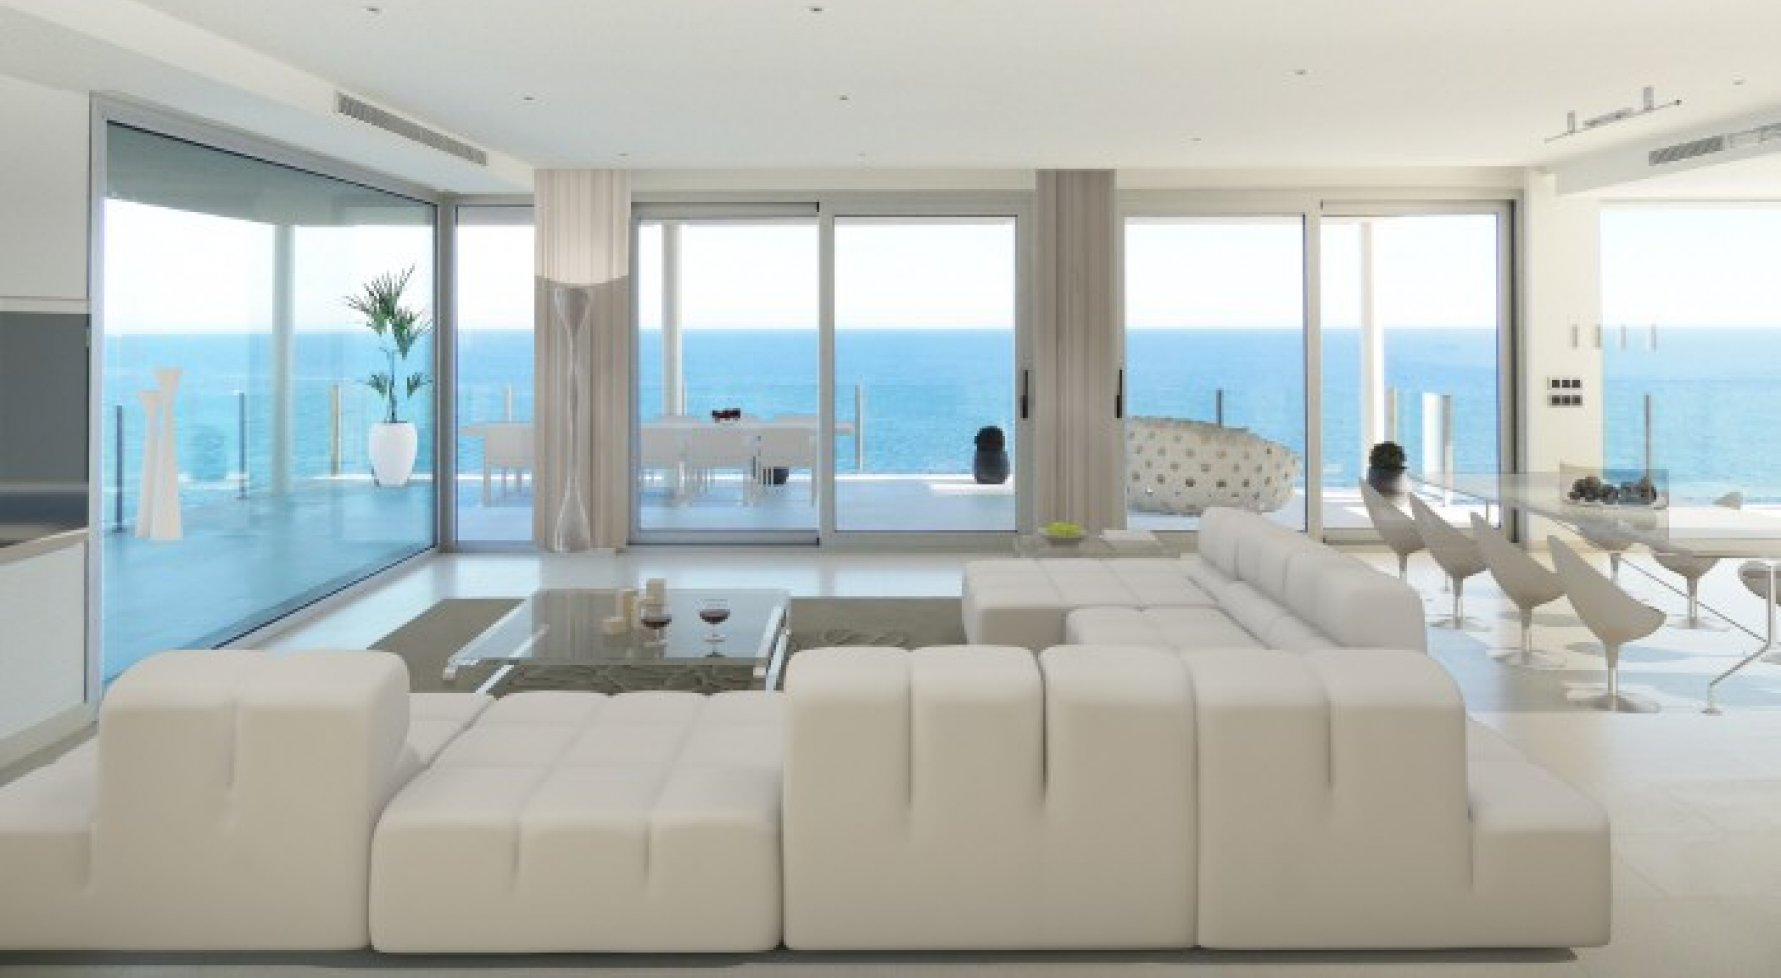 Property in 07589  Provensals: Mallorca: Stylish and meters away from the sea - picture 2